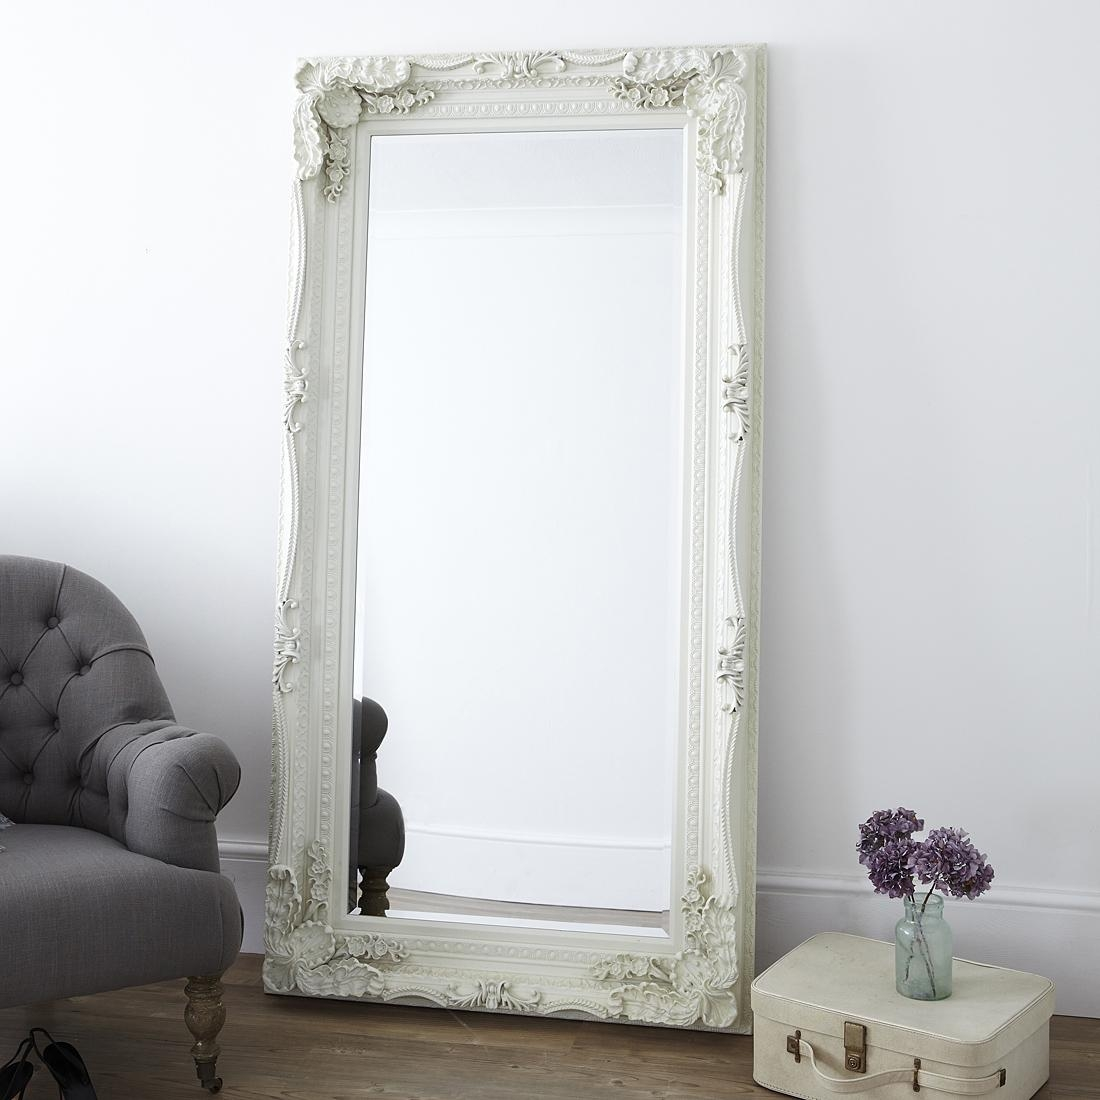 Decorative Cream Full Length Mirror – Primrose & Plum Intended For French Style Full Length Mirror (Image 10 of 20)